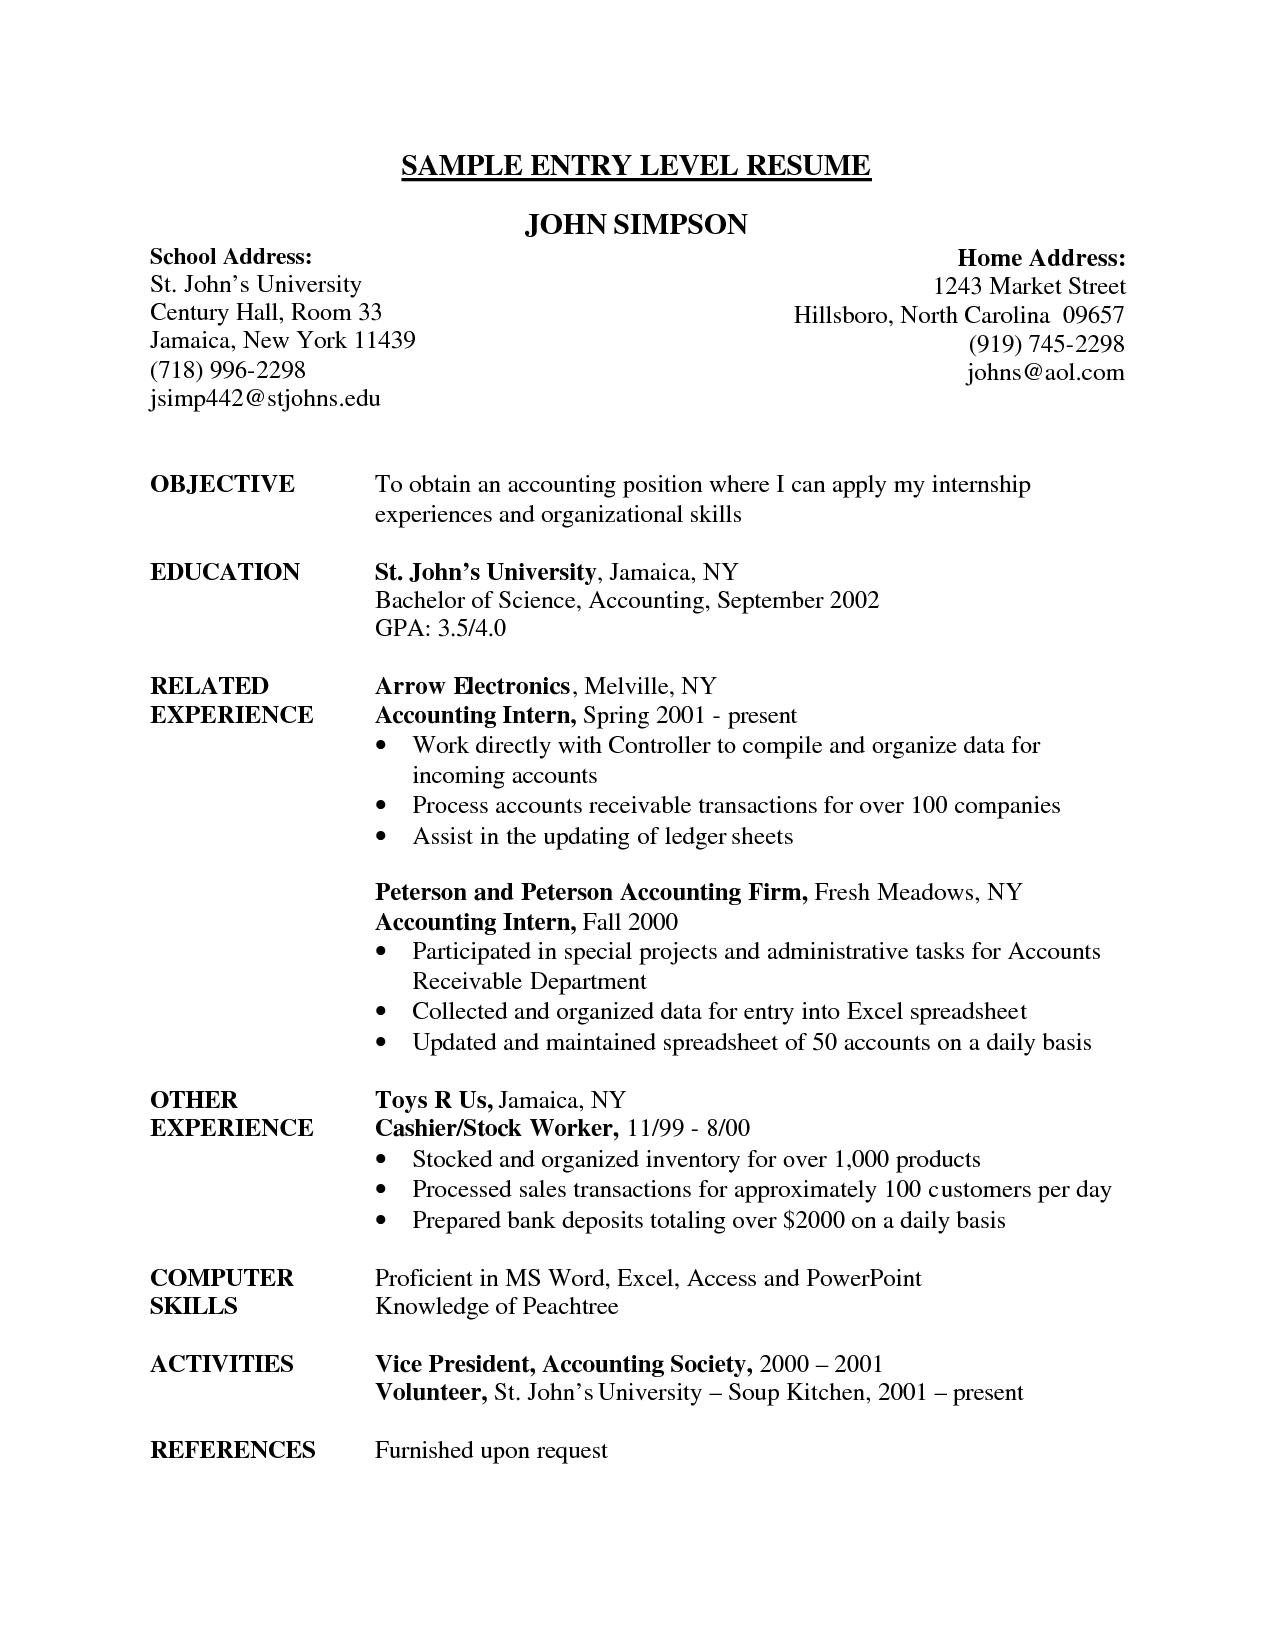 resume objective template resume templates and resume builder entry level accounting resume sample objective related experience